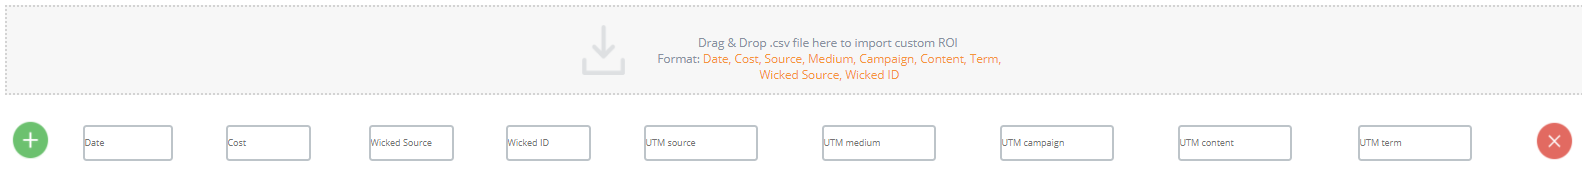 adding other marketing costs wicked reports